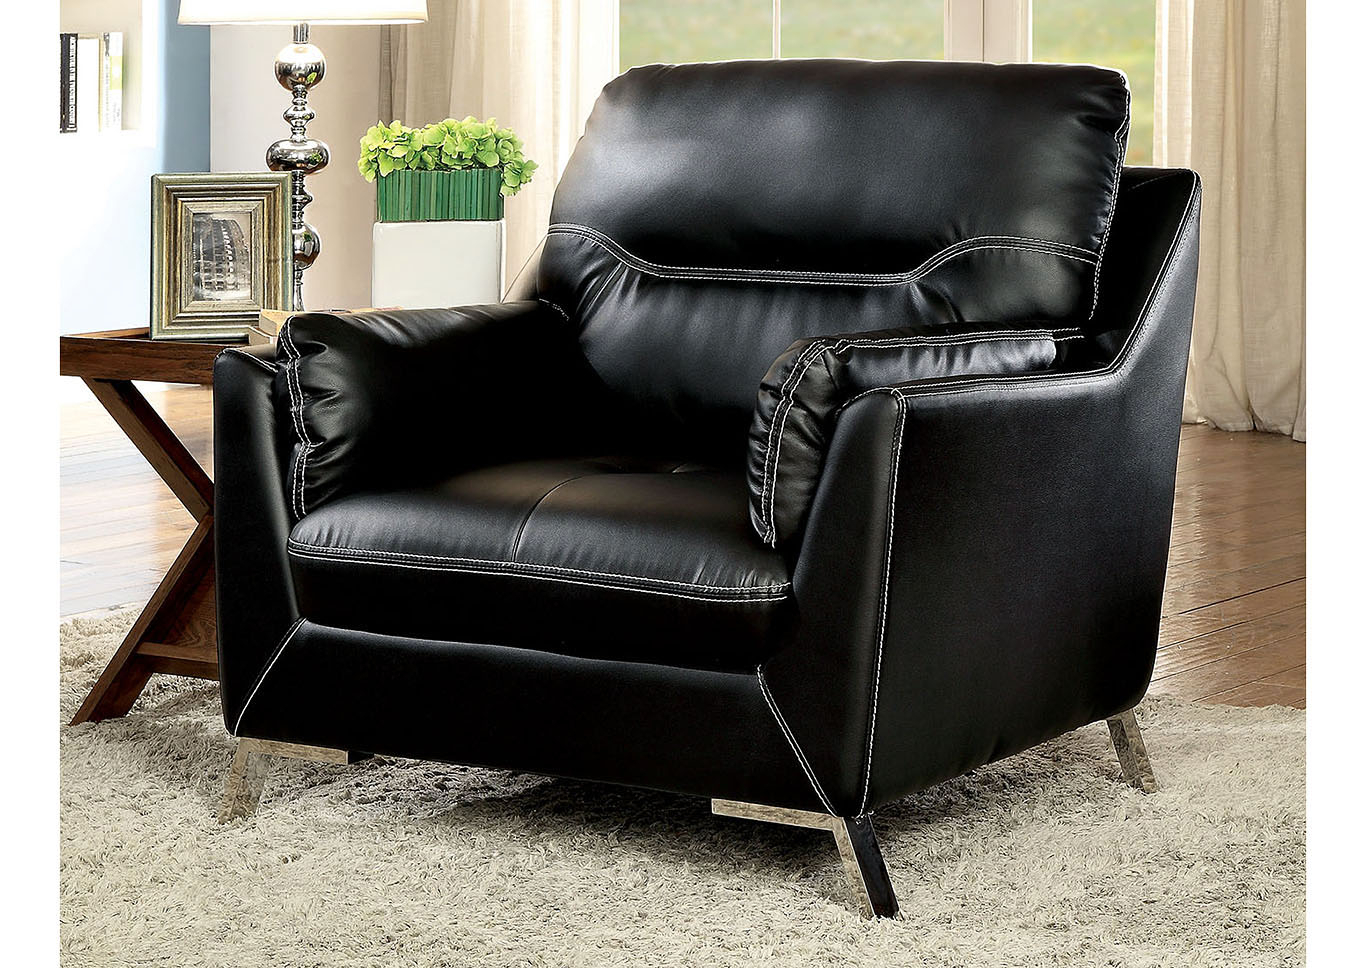 Lion Furniture Center Nichola Black Chair Intended For Nichol Swivel Accent Chairs (Image 9 of 20)